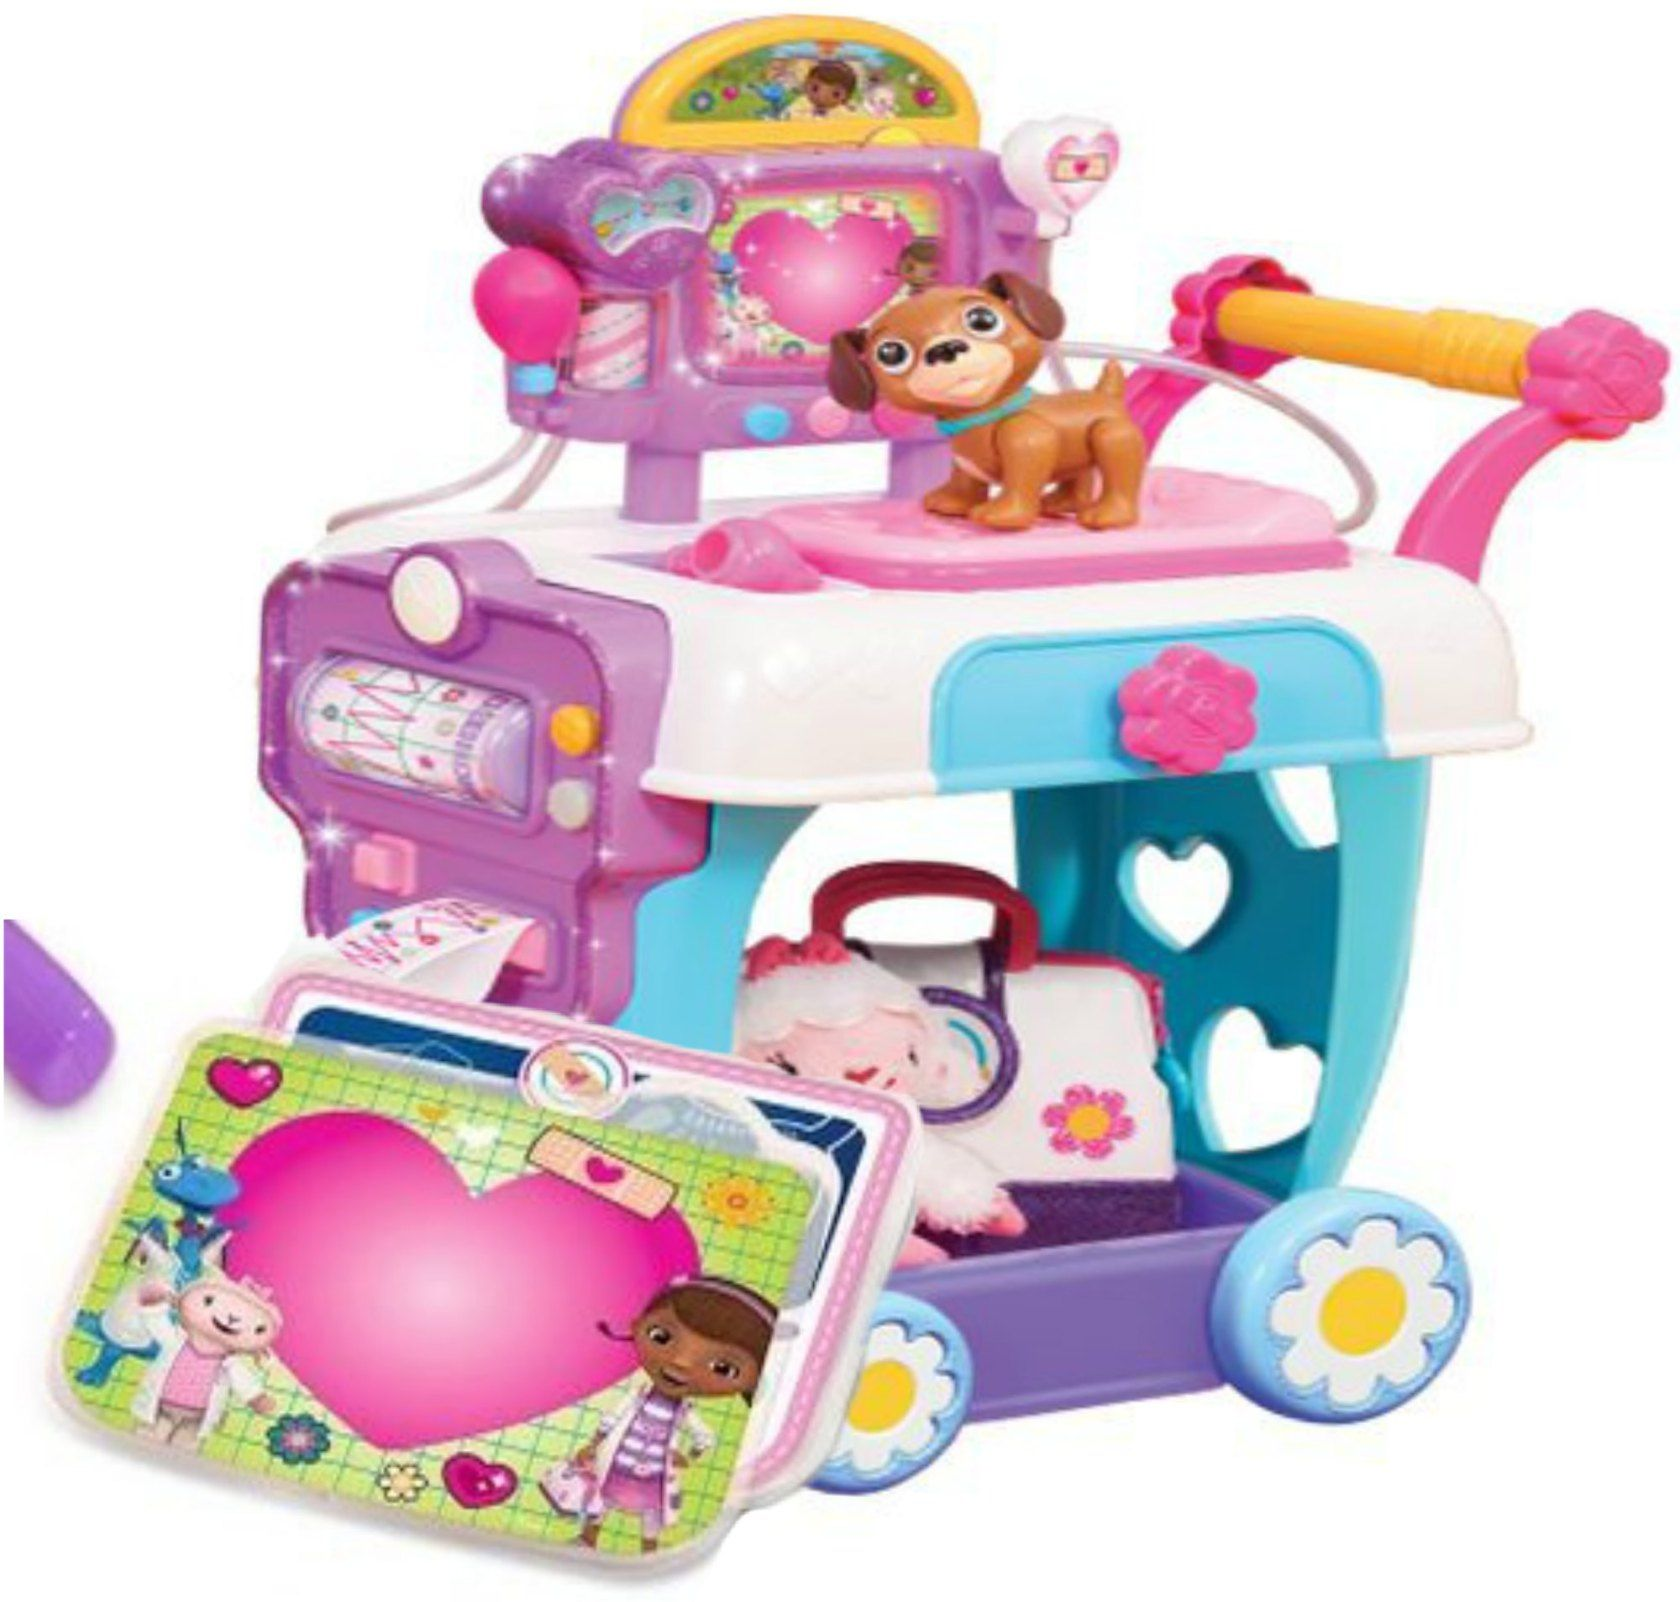 Doc Mcstuffins Scanner Cards Gives Doc Mcstuffins X Rays To Read Find Out What Else Is On This New Doc Mcstuff With Images Doc Mcstuffins Toys Doc Mcstuffins Toddler Toys